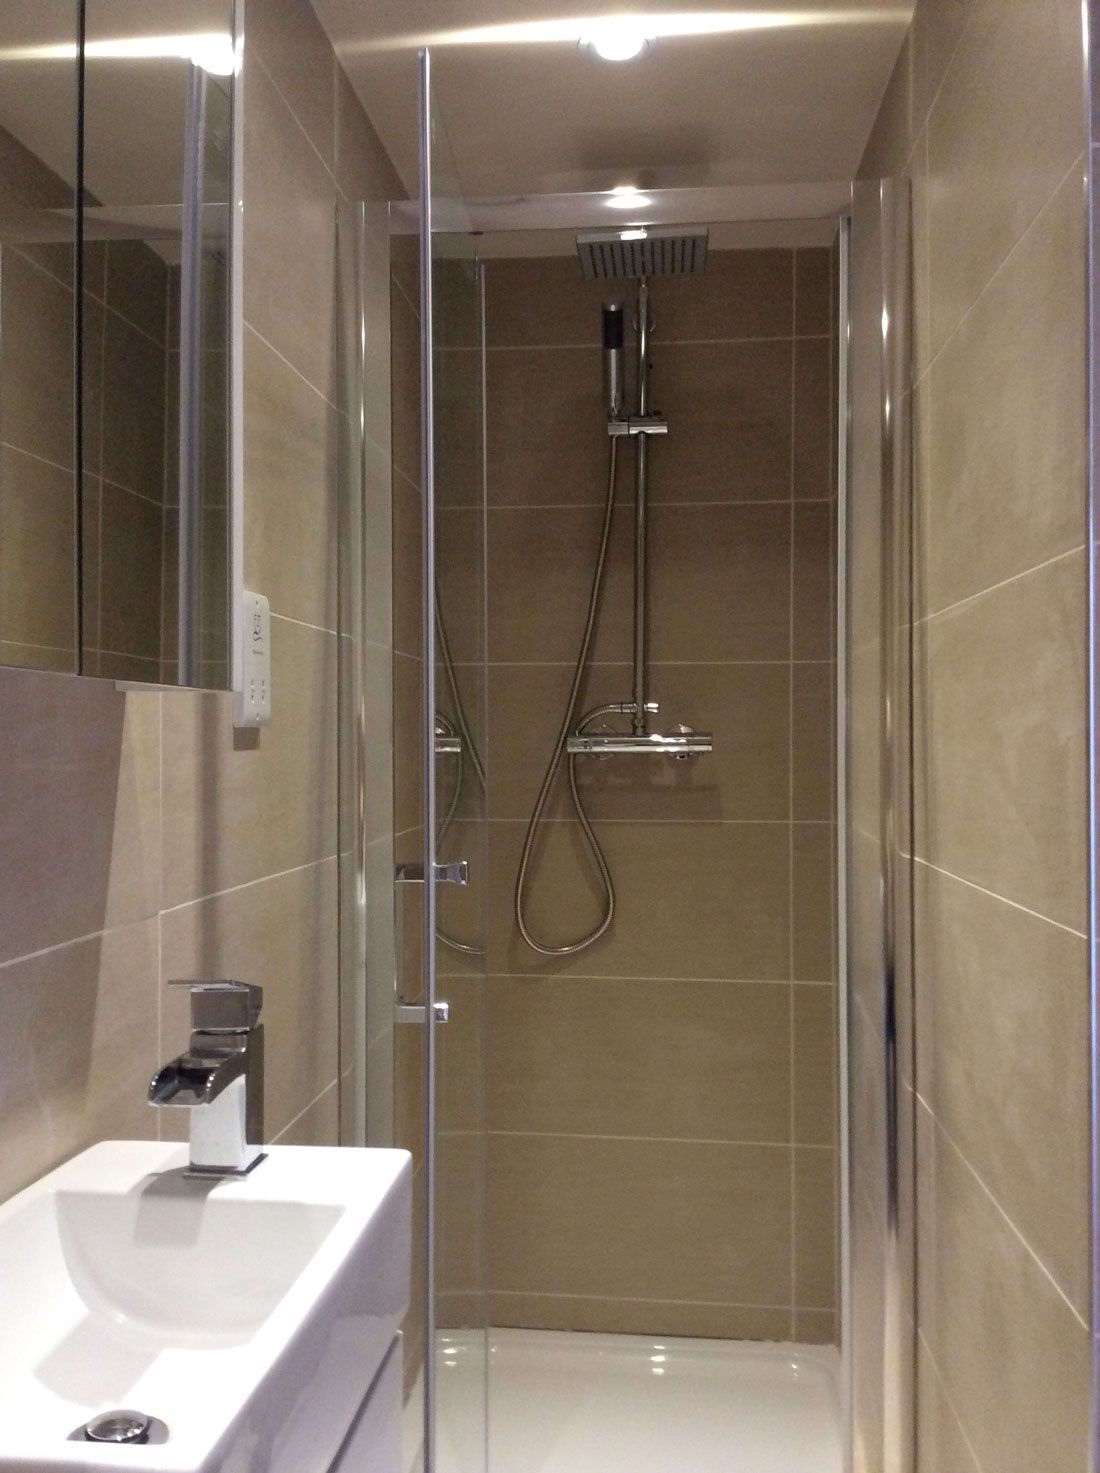 small ensuite bathroom ideas Image result for smallest ensuite | bath in 2019 | Small